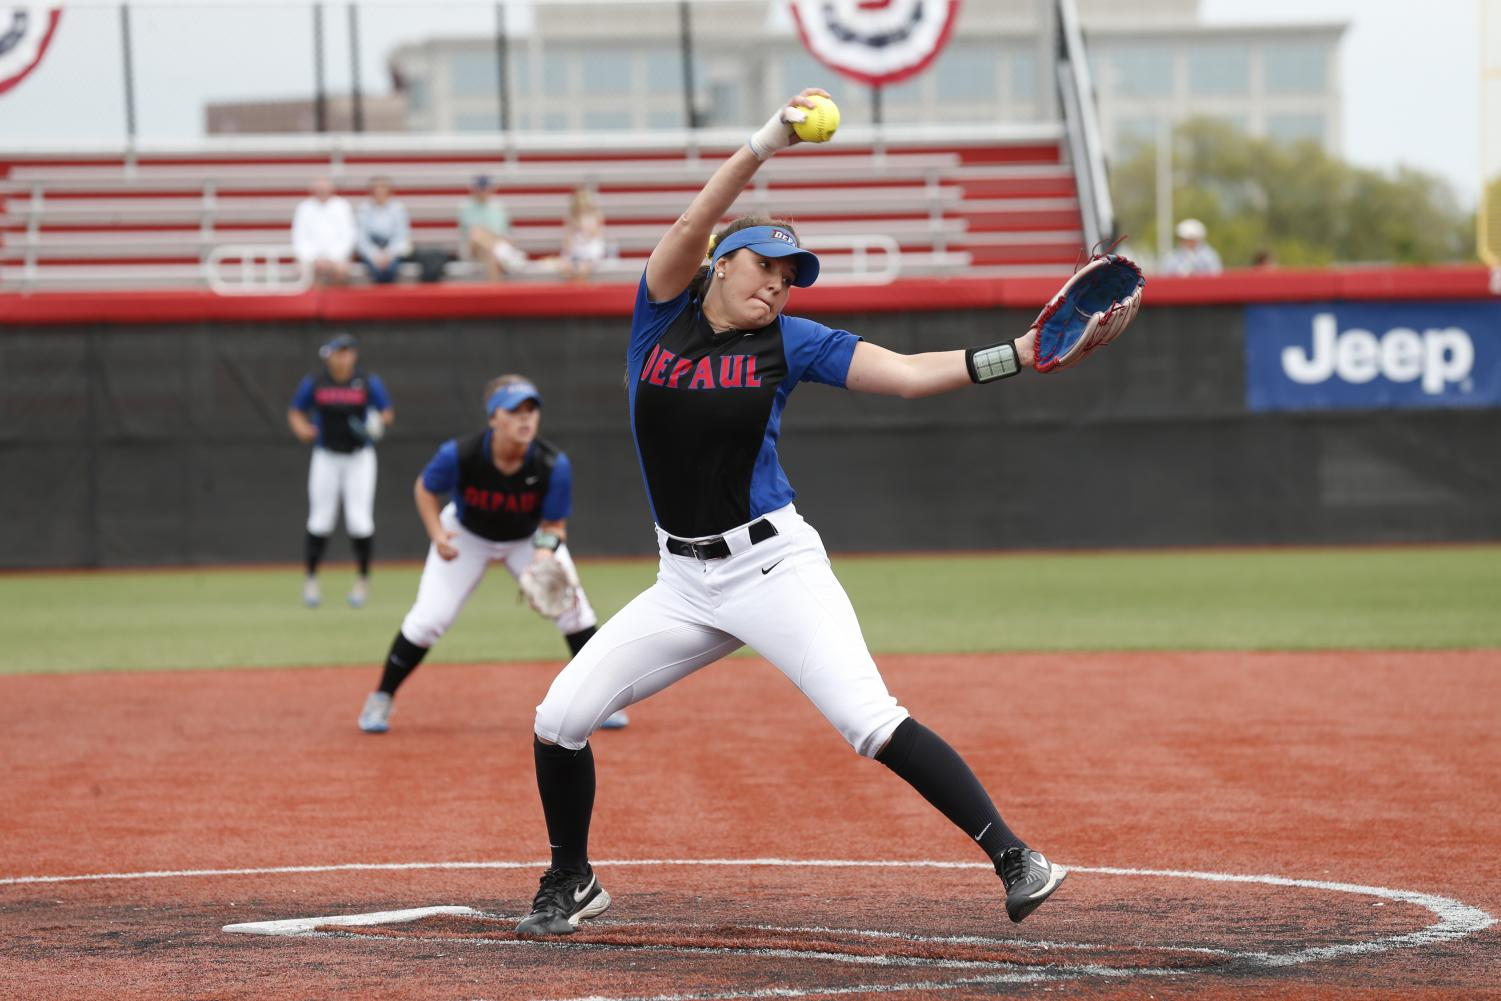 Sophomore pitcher Missy Zoch tossed all 10 innings in DePaul's extra-innings loss to St. Johns Sunday. (Steve Woltmann   DePaul Athletics)